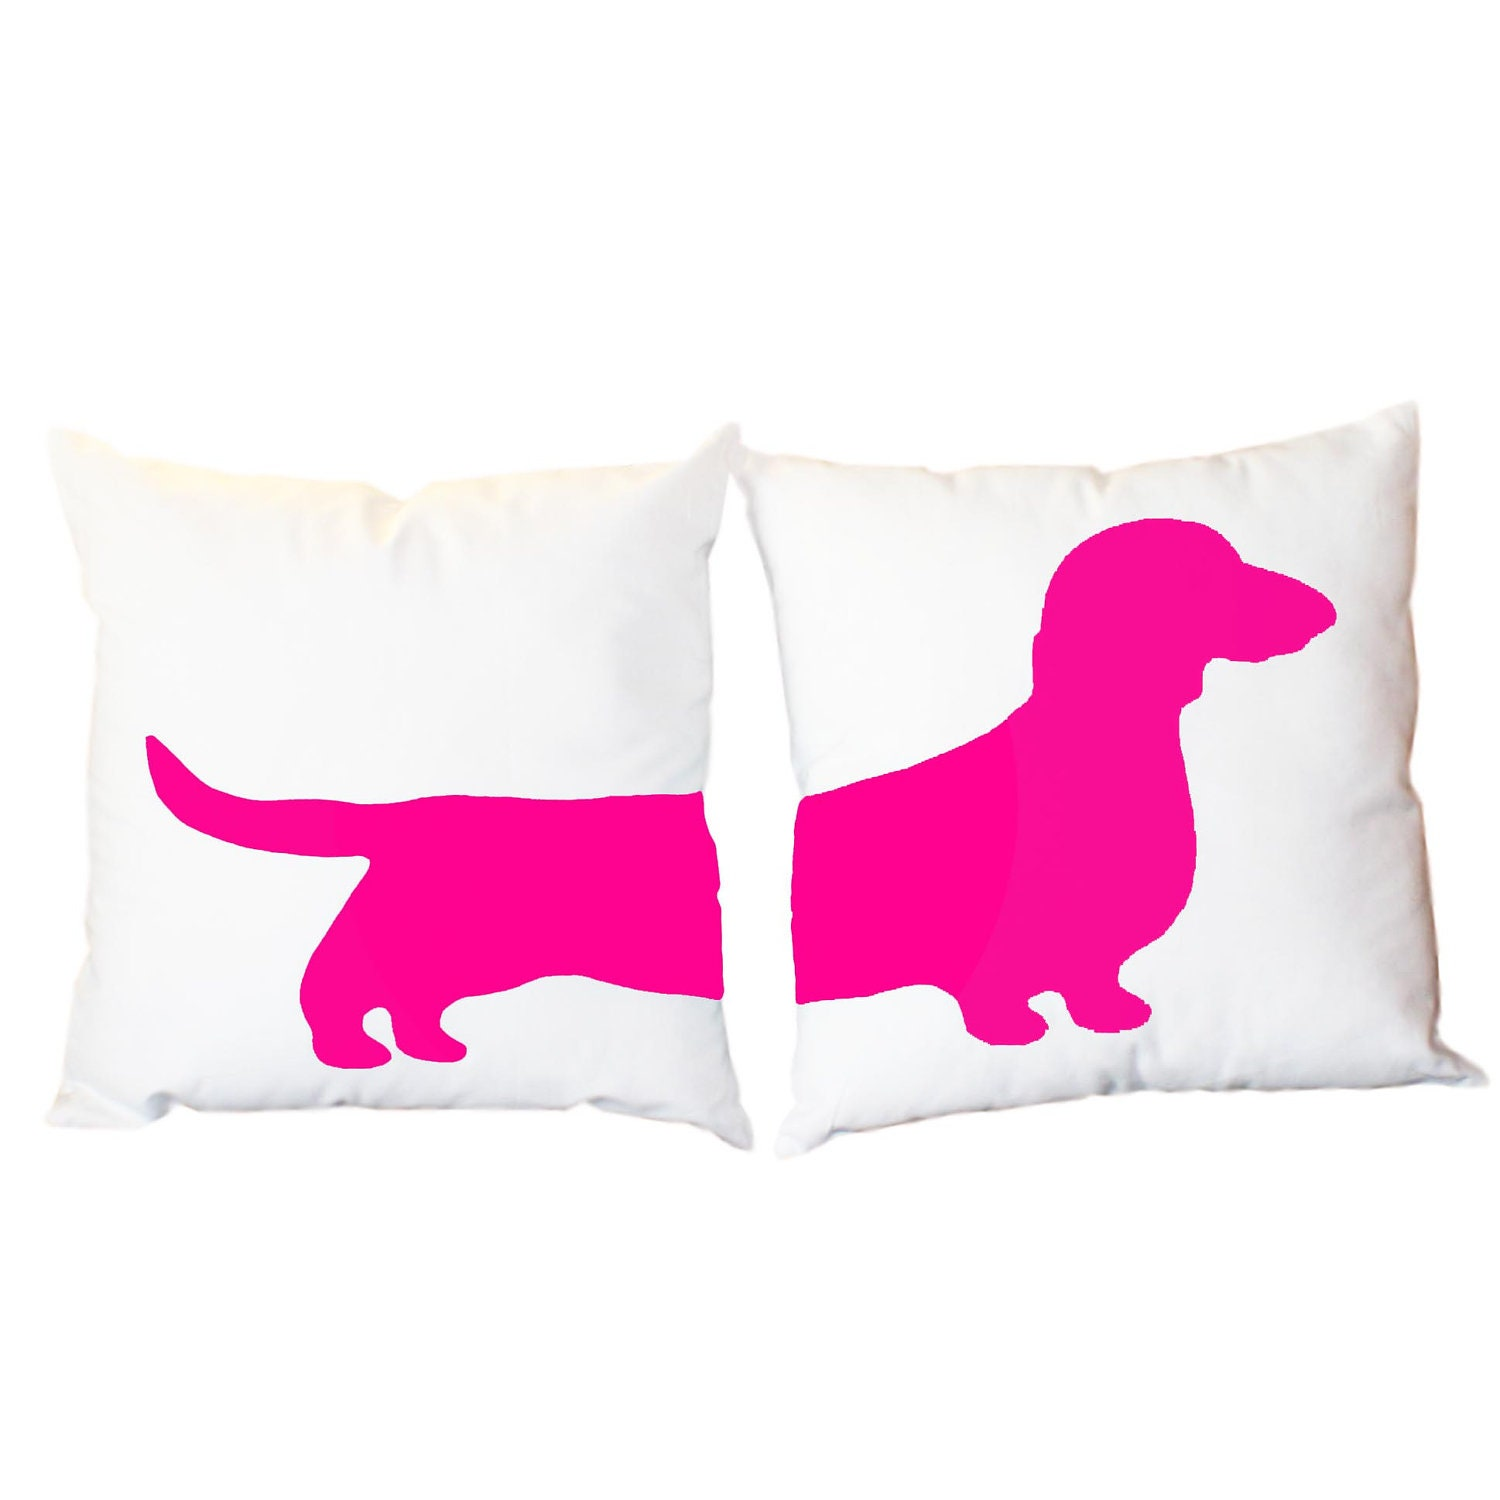 Modern Pillows Etsy : 2 Modern Dachshund Pillows Wiener Dog Home Decor by ScarlettandCo